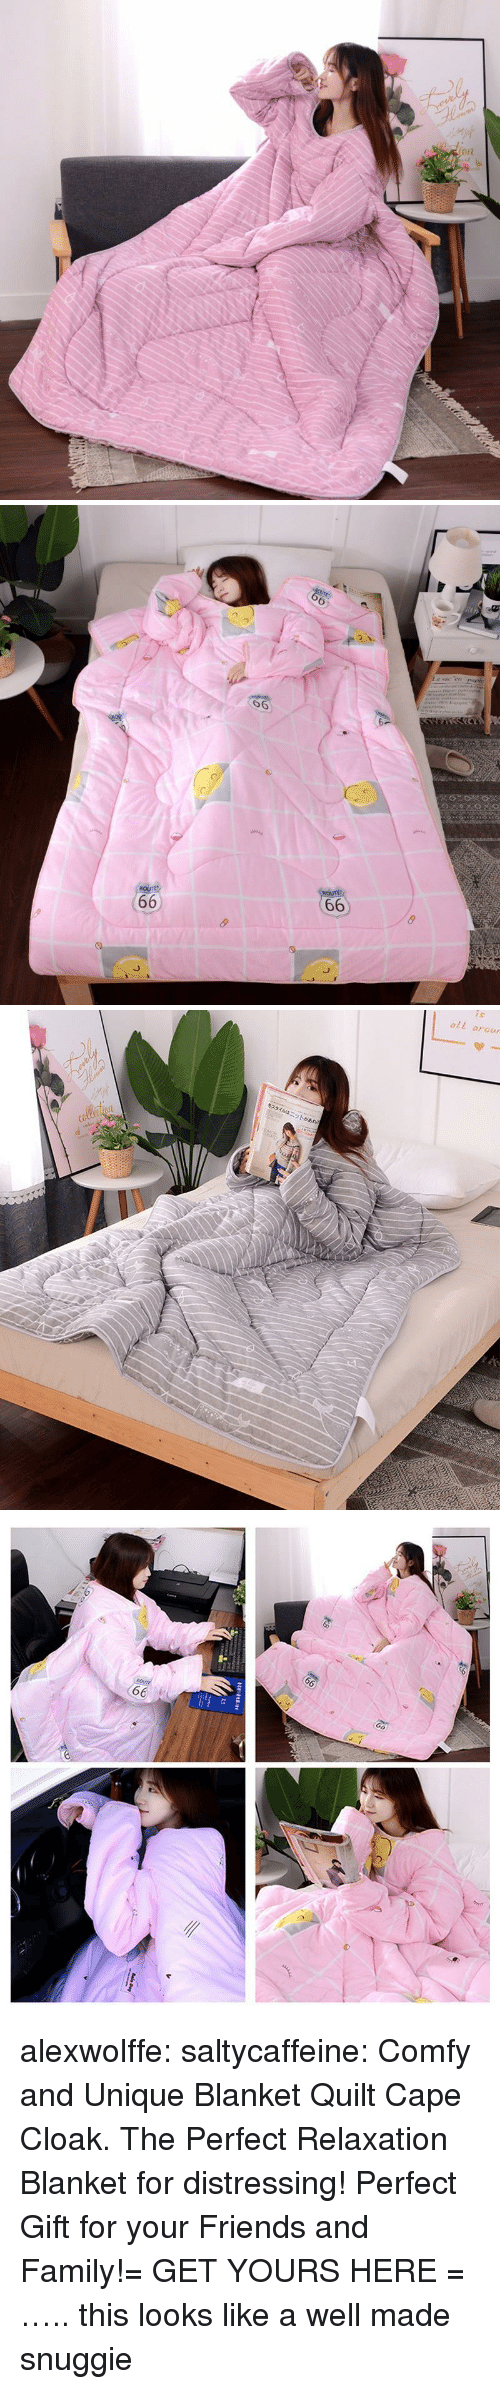 Family, Friends, and Tumblr: 6  6   oll arour alexwolffe:  saltycaffeine:  Comfy and Unique Blanket Quilt Cape Cloak. The Perfect Relaxation Blanket for distressing! Perfect Gift for your Friends and Family!= GET YOURS HERE =  ….. this looks like a well made snuggie